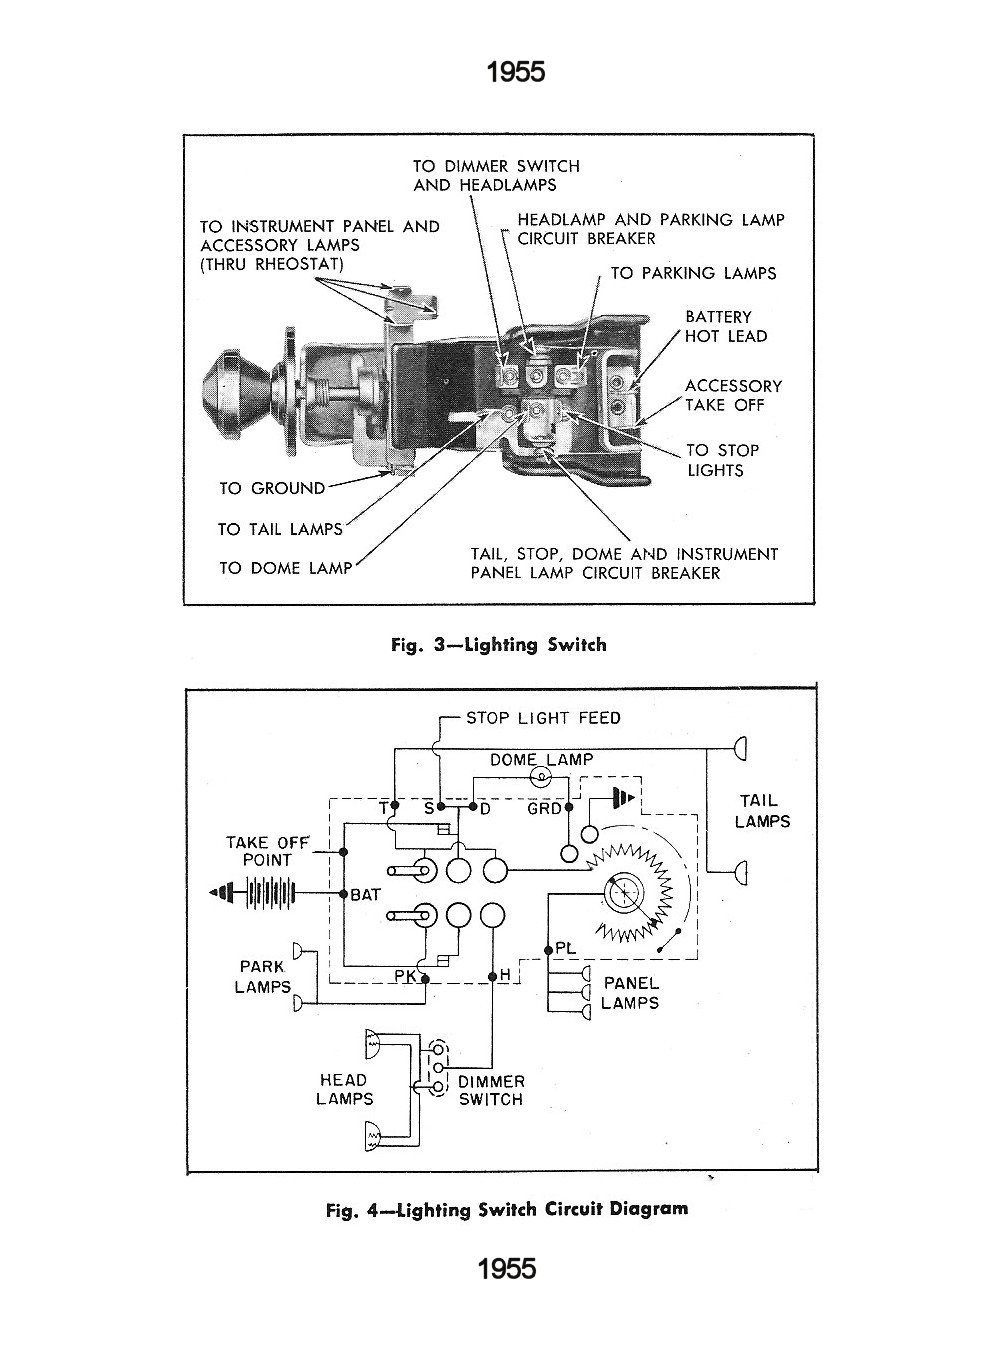 wiring diagram 1956 chevrolet nomad wiring diagram data 1951 Chevy Truck Wiring Diagram wiring diagram 1956 chevrolet nomad wiring diagram 55 chevy wiring diagram chevy wiring diagrams wiring diagram